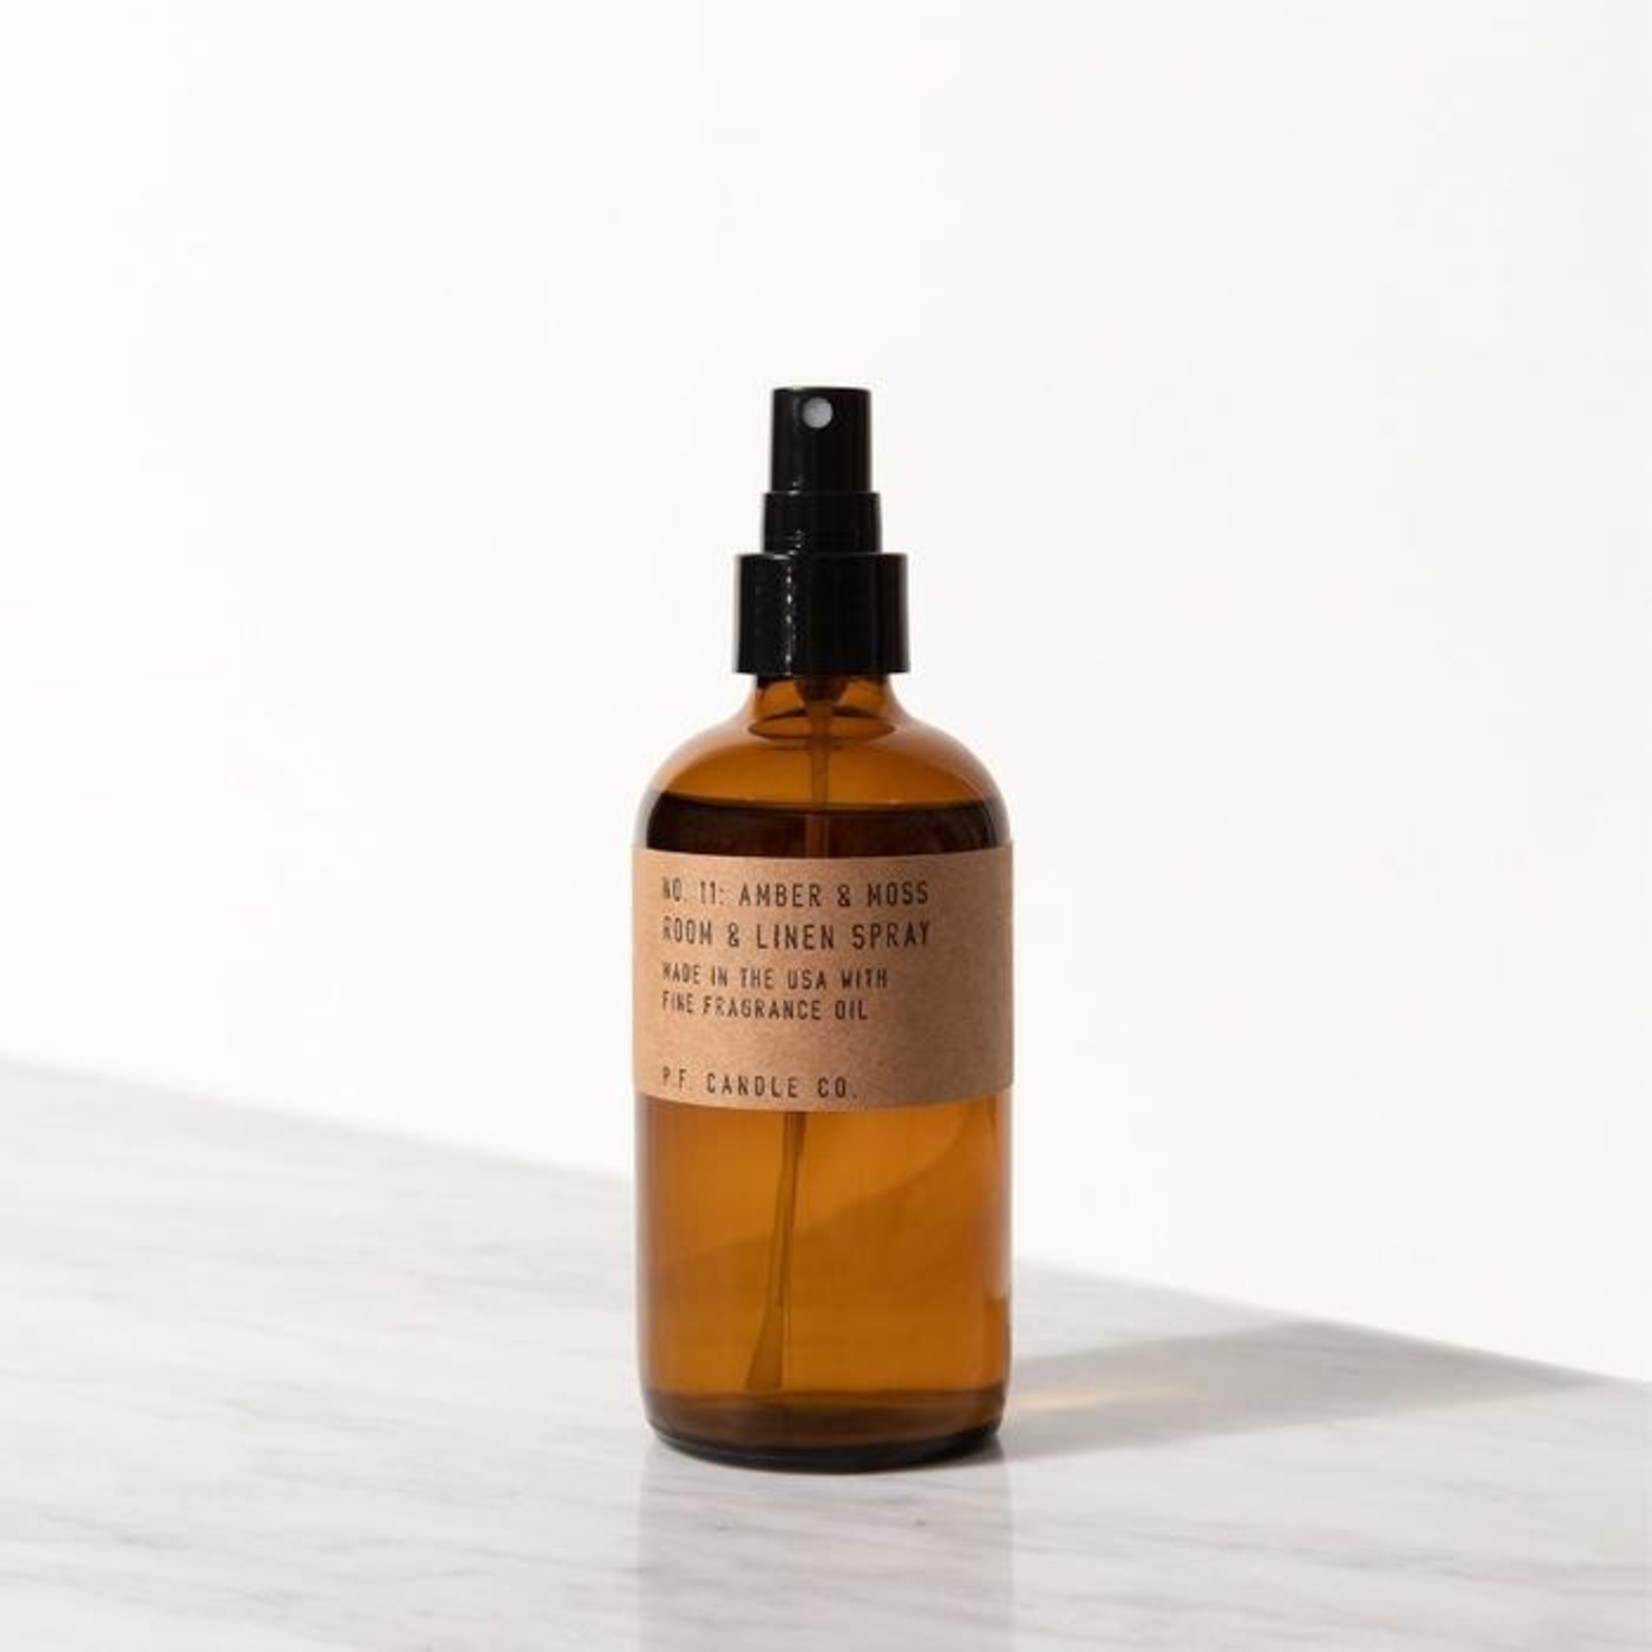 PF Candle Co Amber & Moss Room Spray